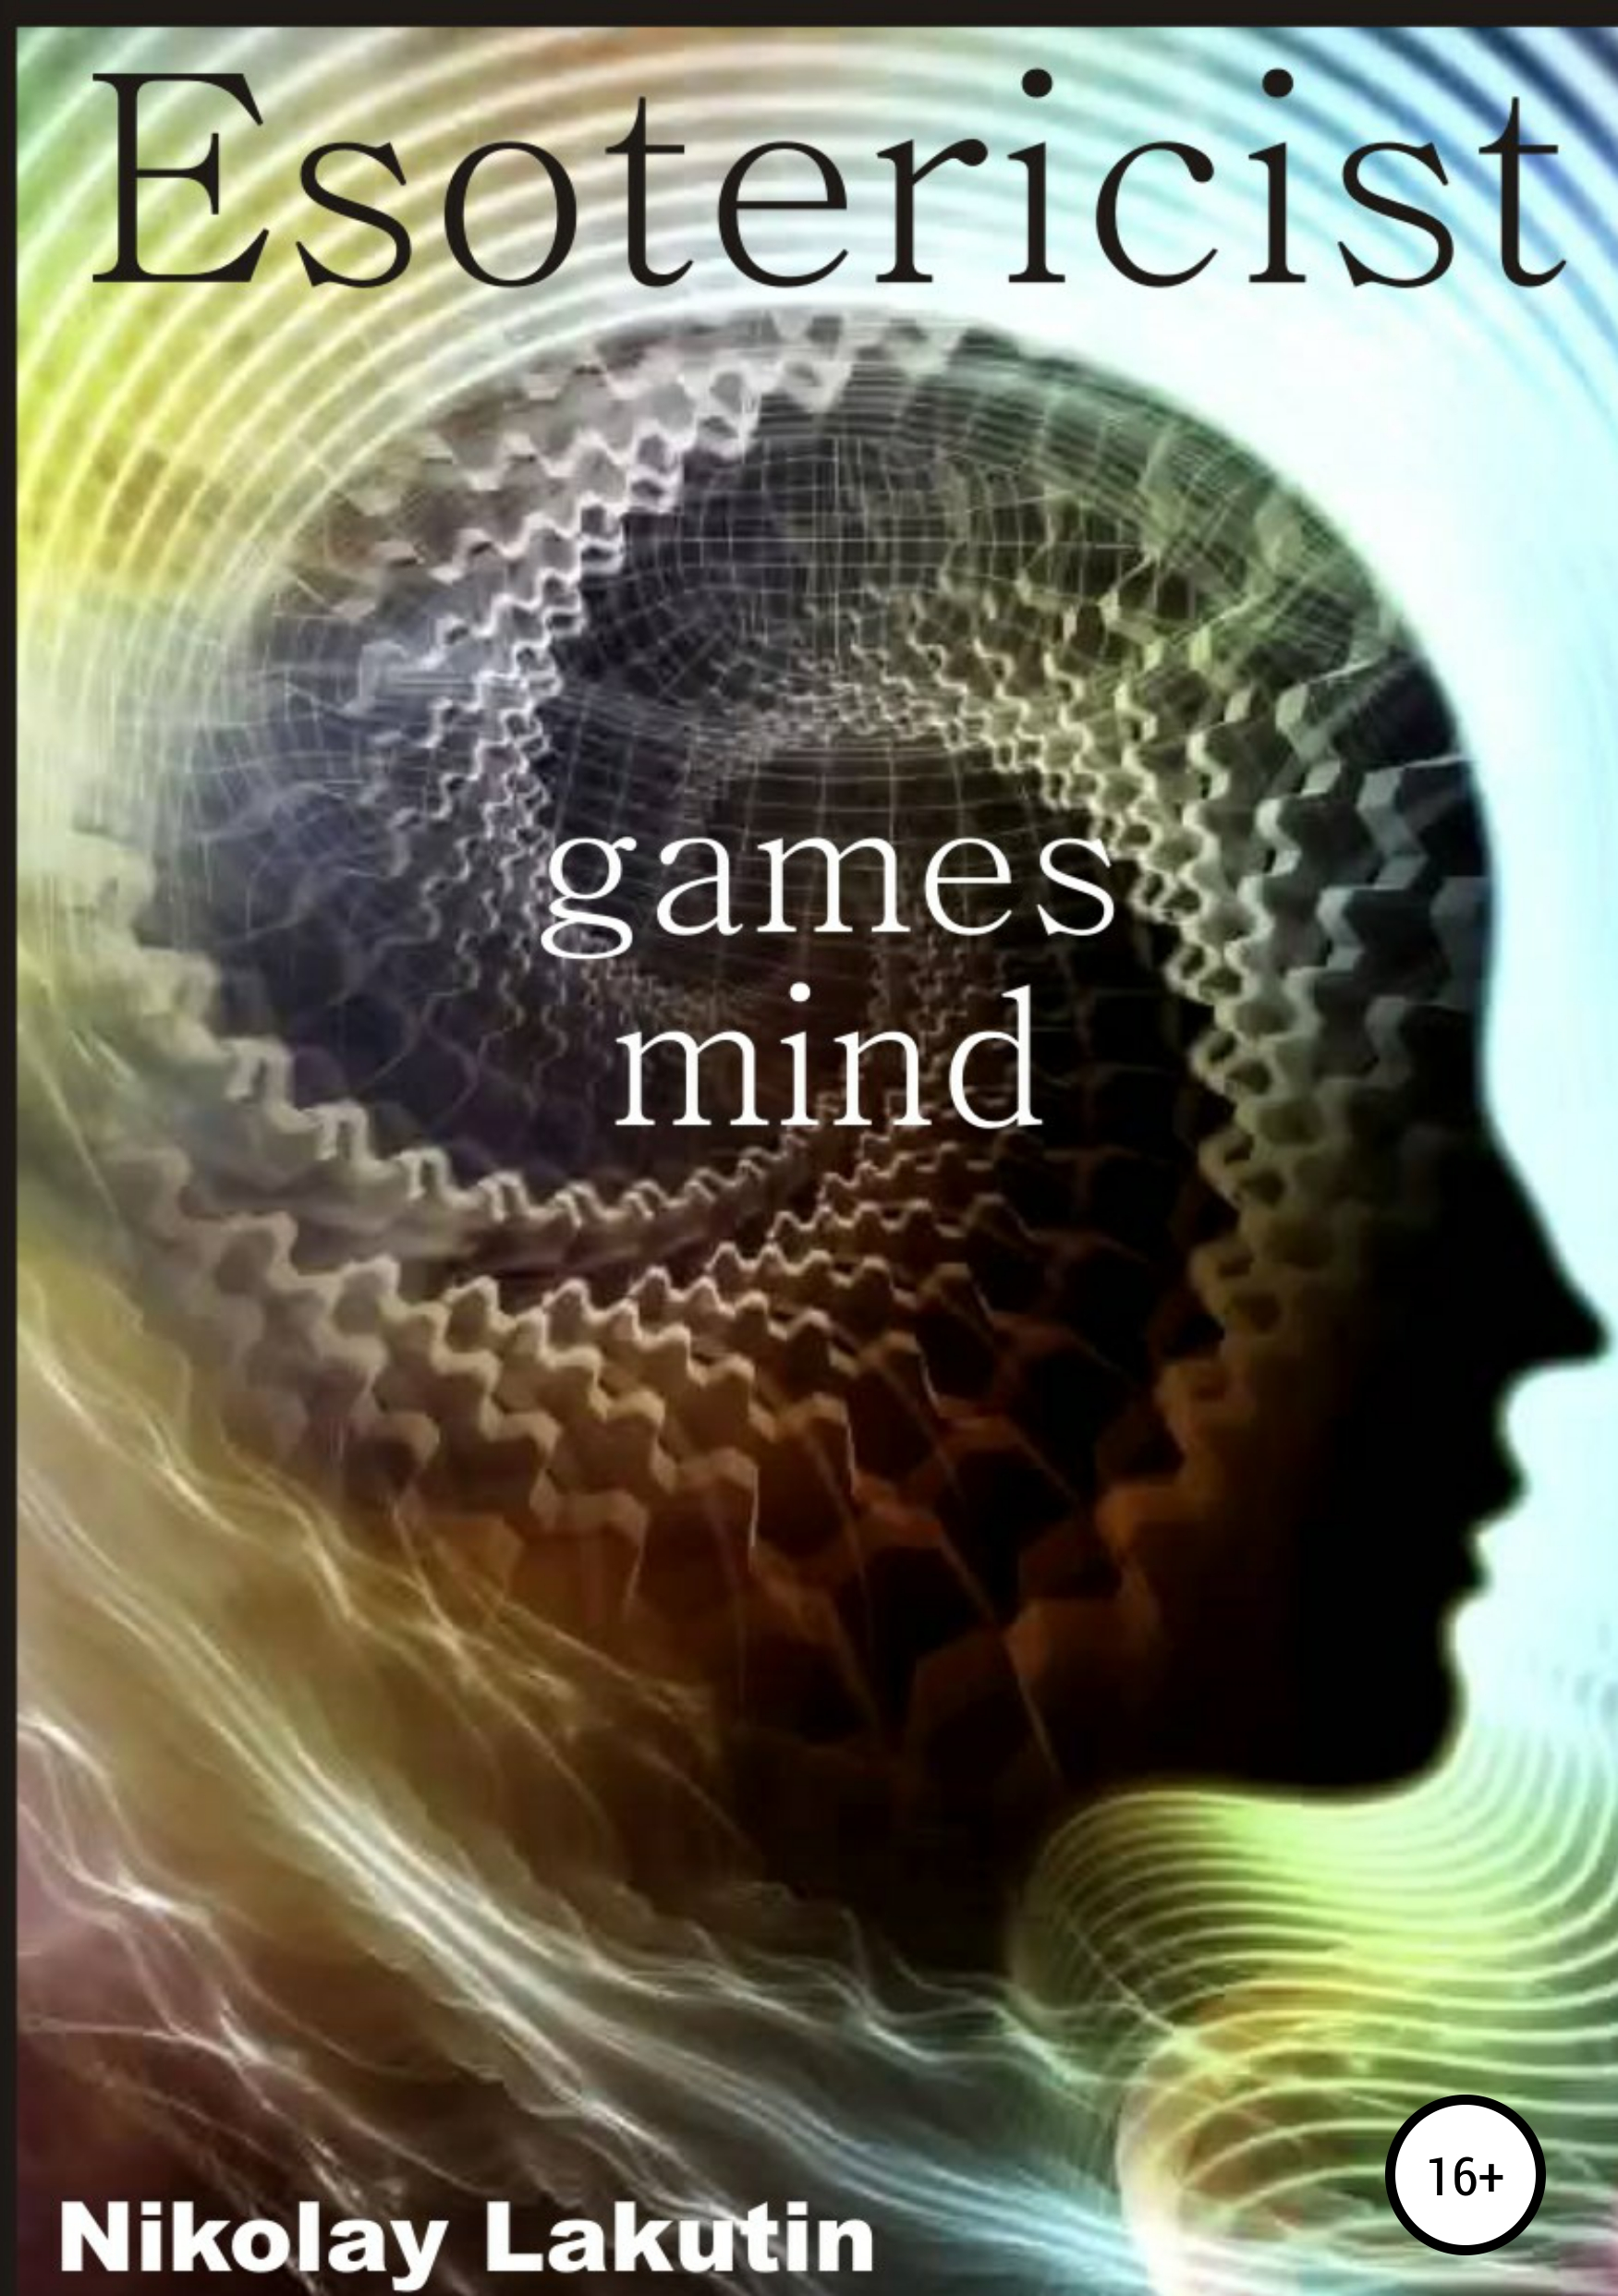 Nikolay Lakutin Esotericist. Mind games cd deep purple who do we think we are remastered